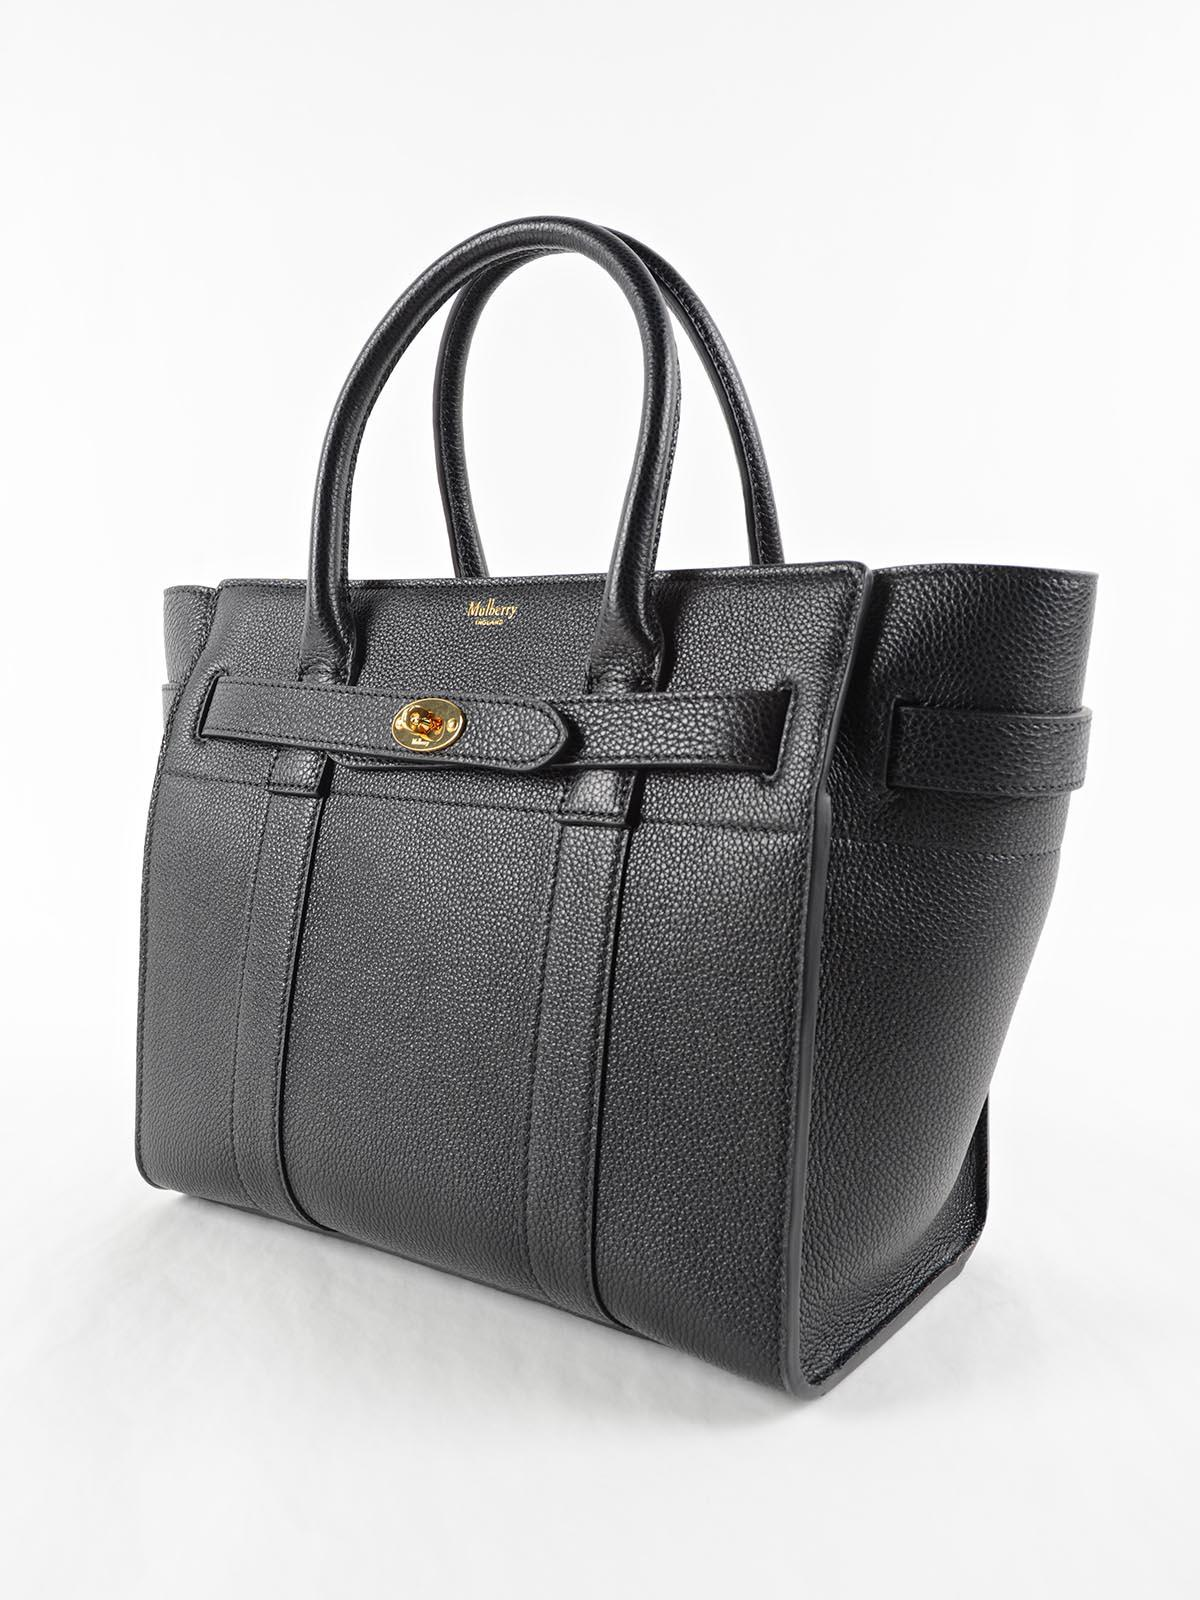 Lyst - Mulberry Small Zip Bayswater Bag in Black 77d75eff389f1